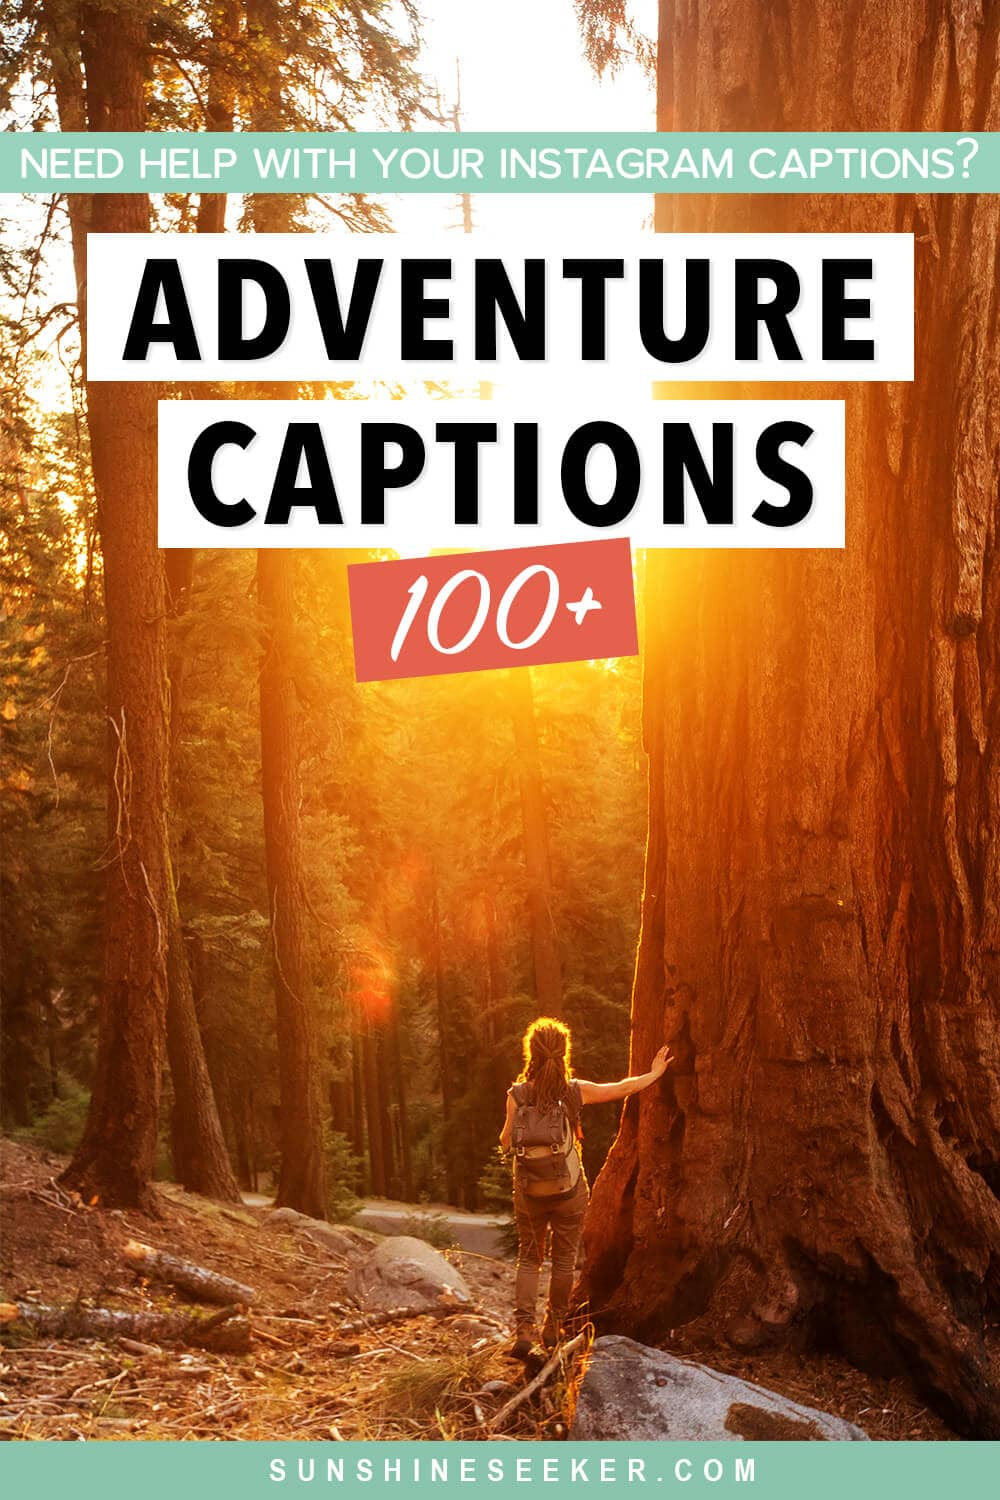 Adventure captions for Instagram - Including couples adventure Instagram captions, travel captions, funny adventure captions and adventure quotes by famous people. Get your travel captions for social media here!